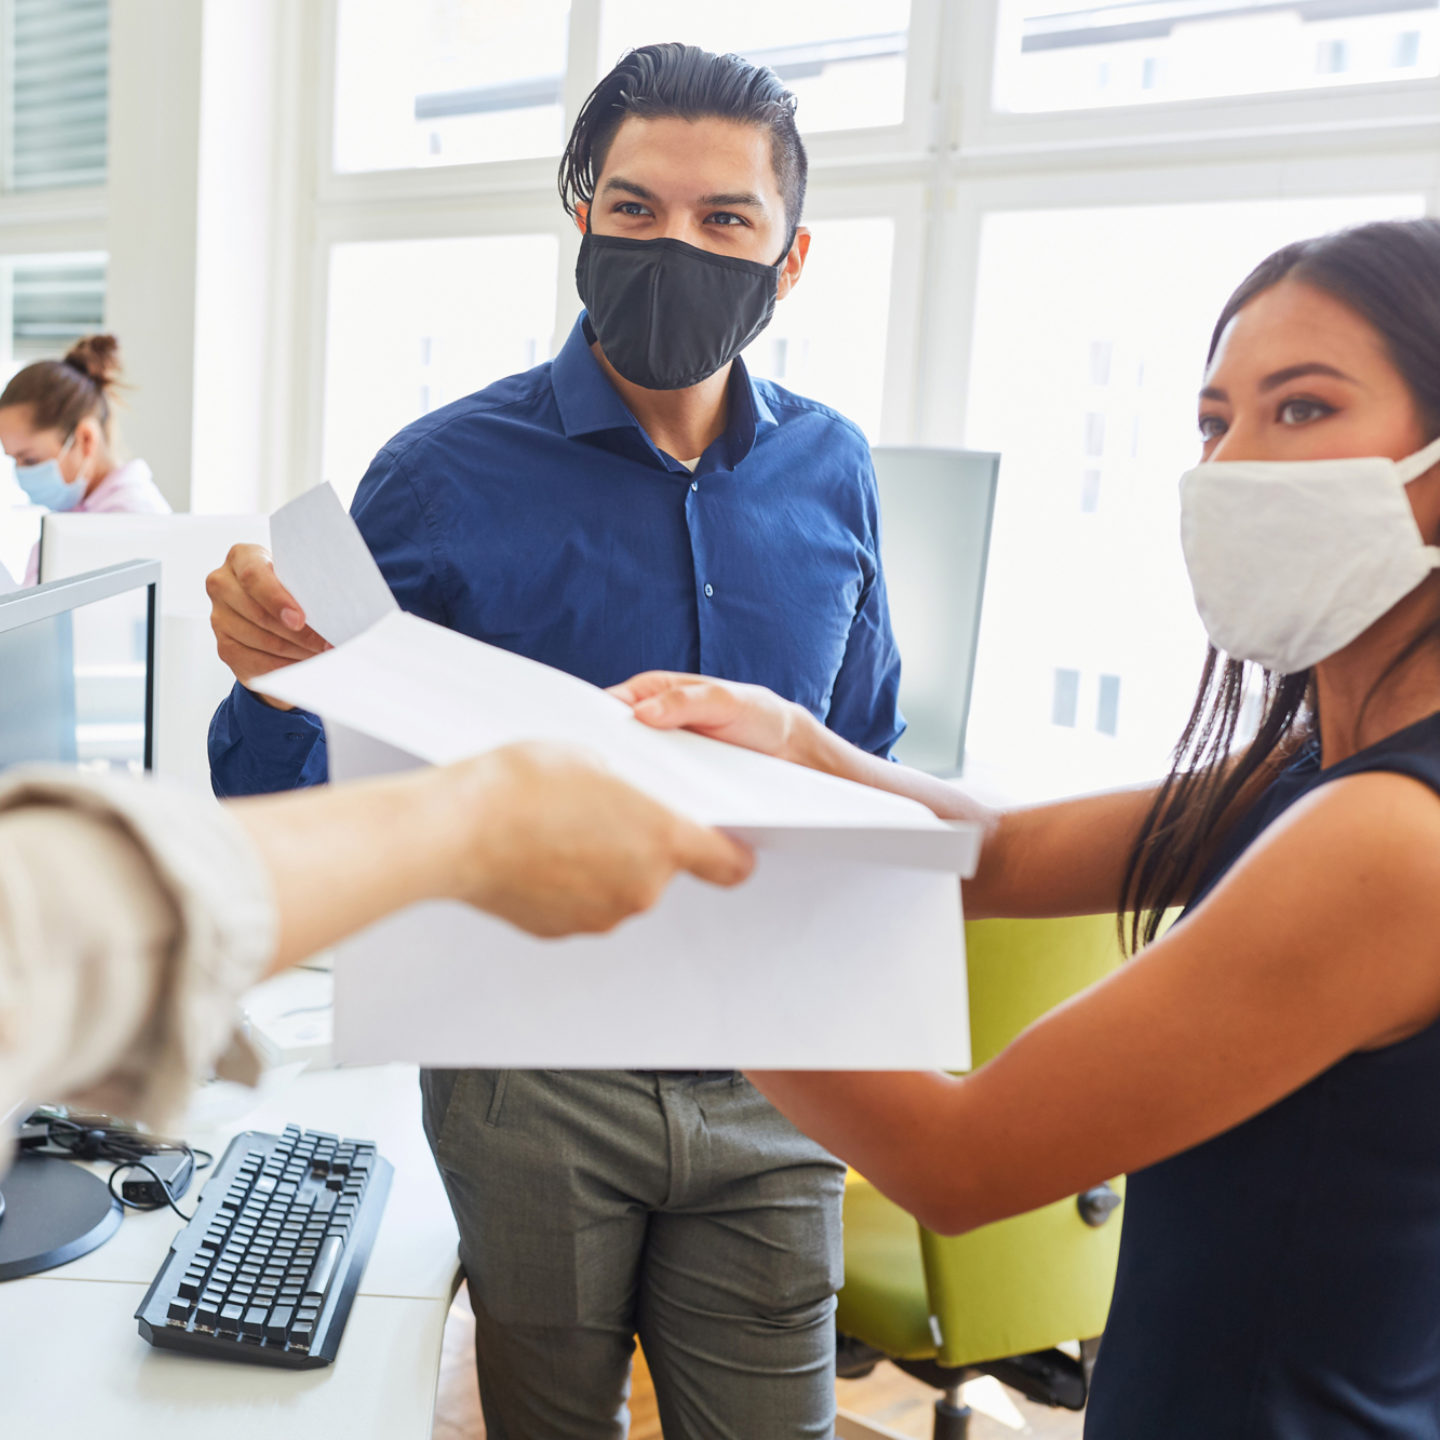 People training in office with masks